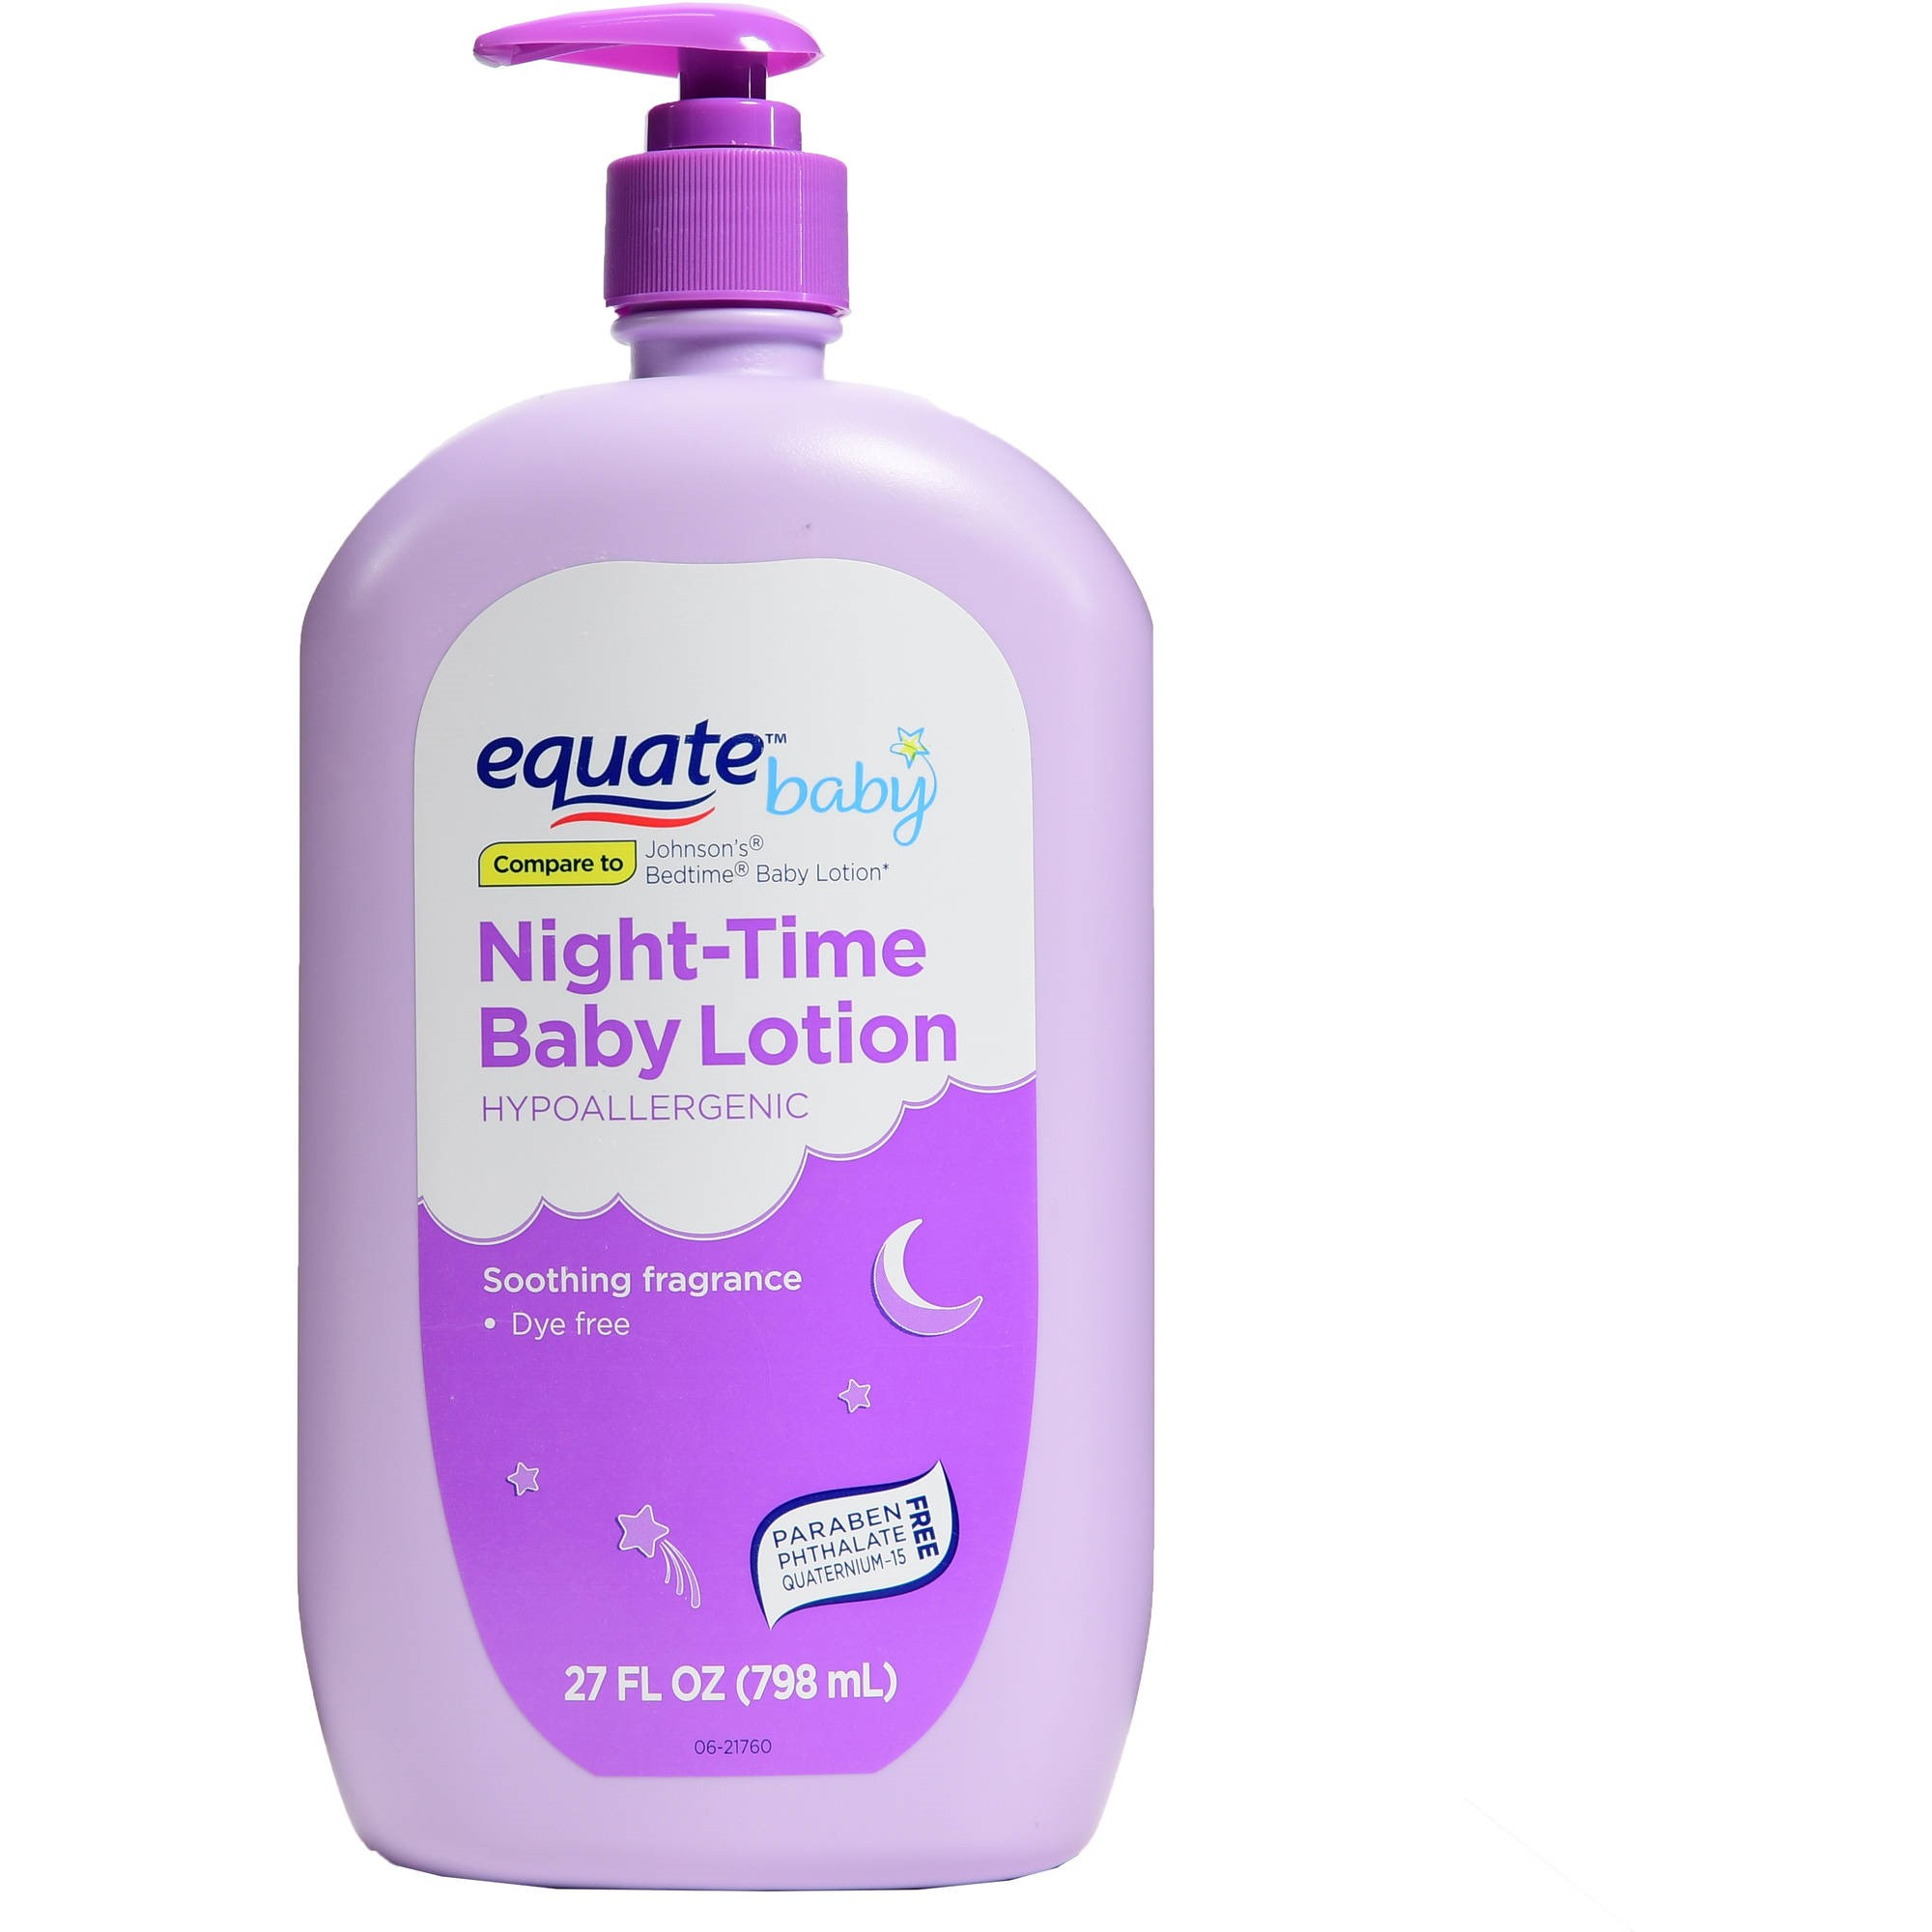 (2 pack) Equate Night-Time Baby Lotion, 27 Fl Oz